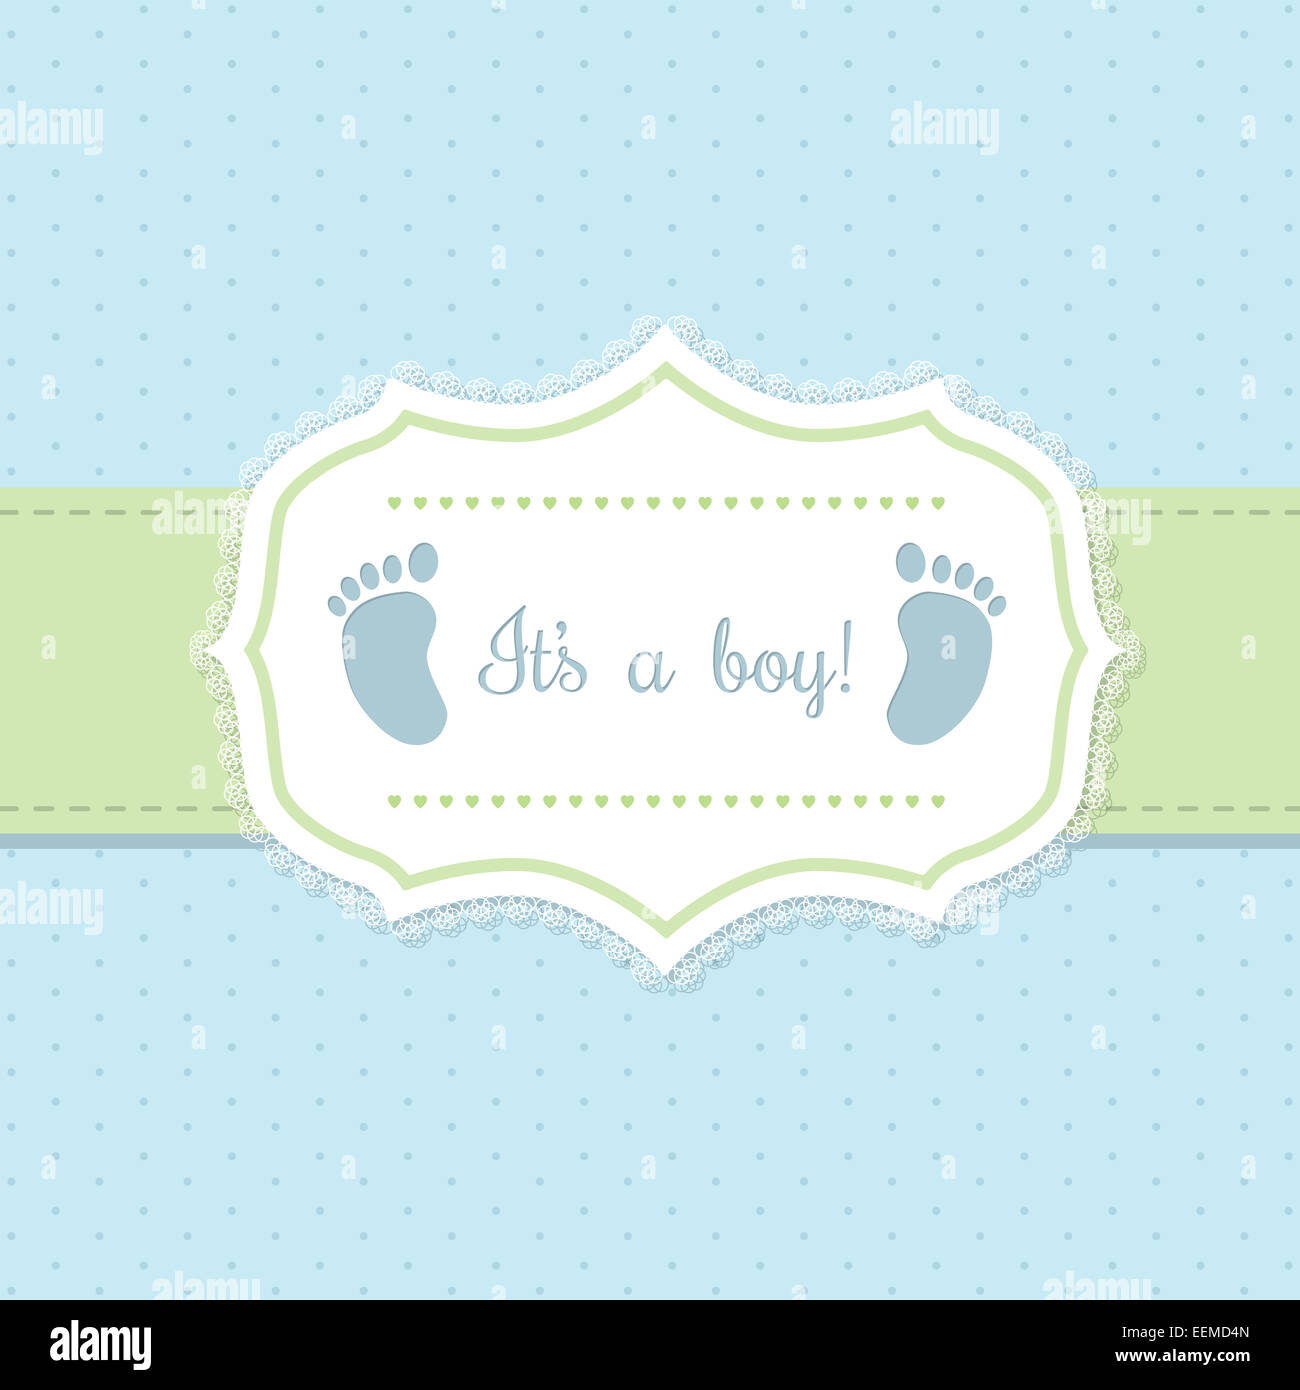 Baby shower invitation design in blue and green with footprints ...